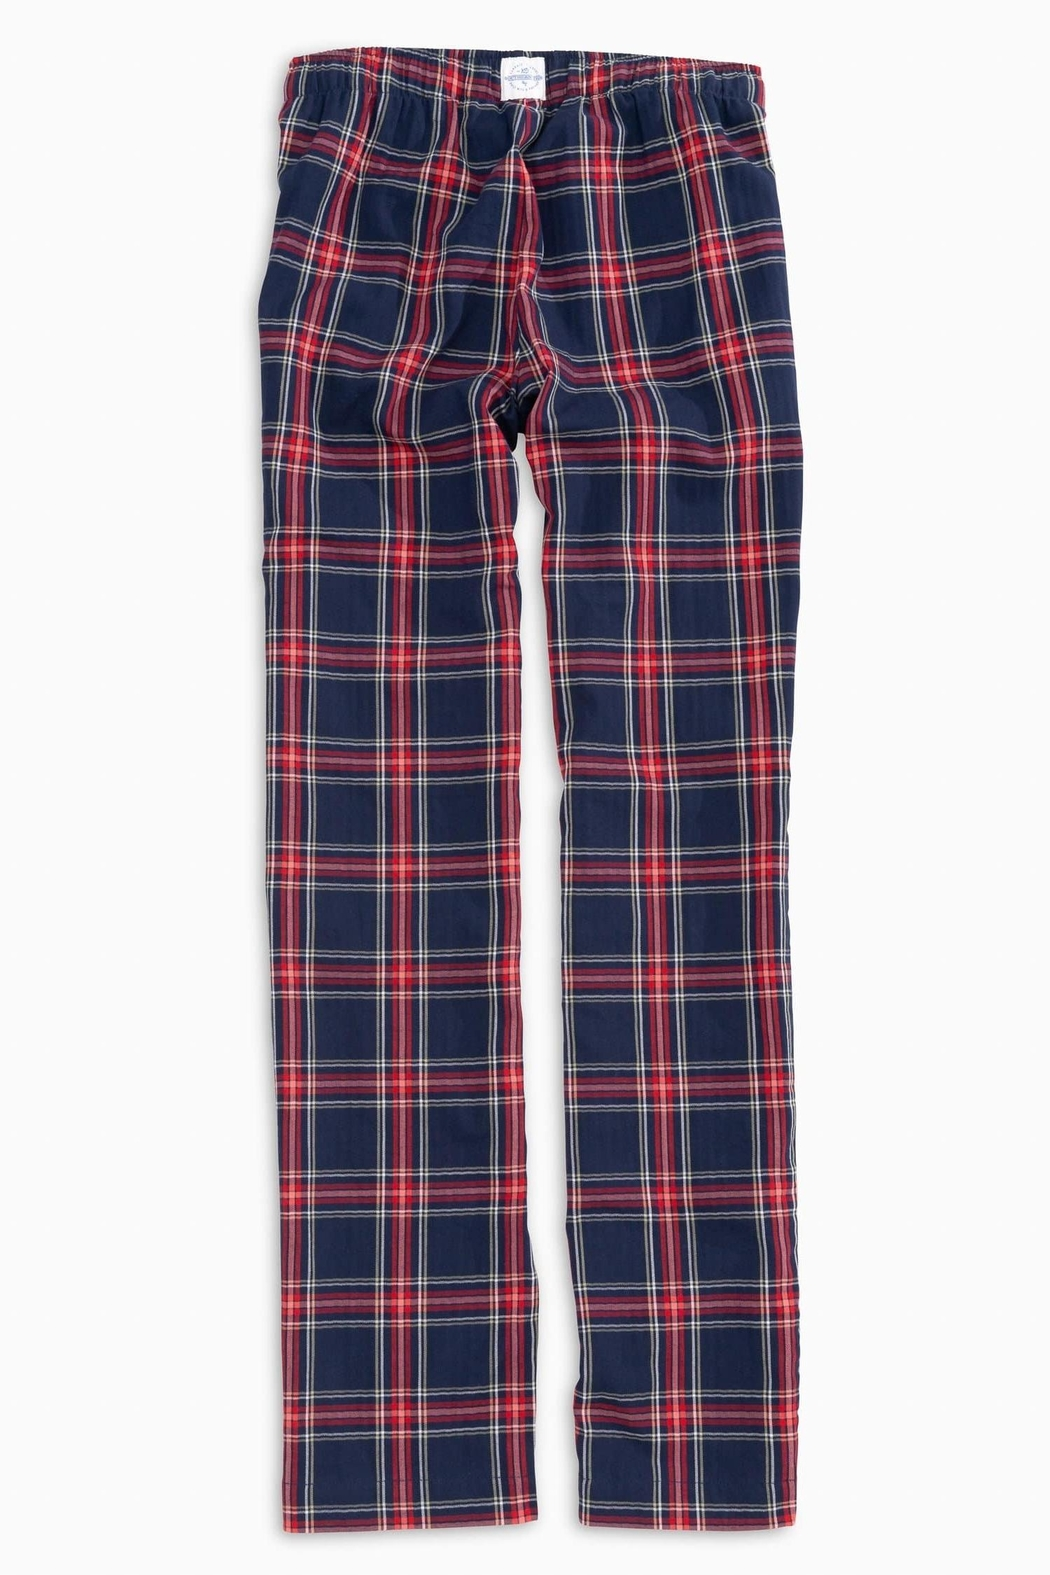 Southern Tide Plaid Lounge Pant - Front Full Image